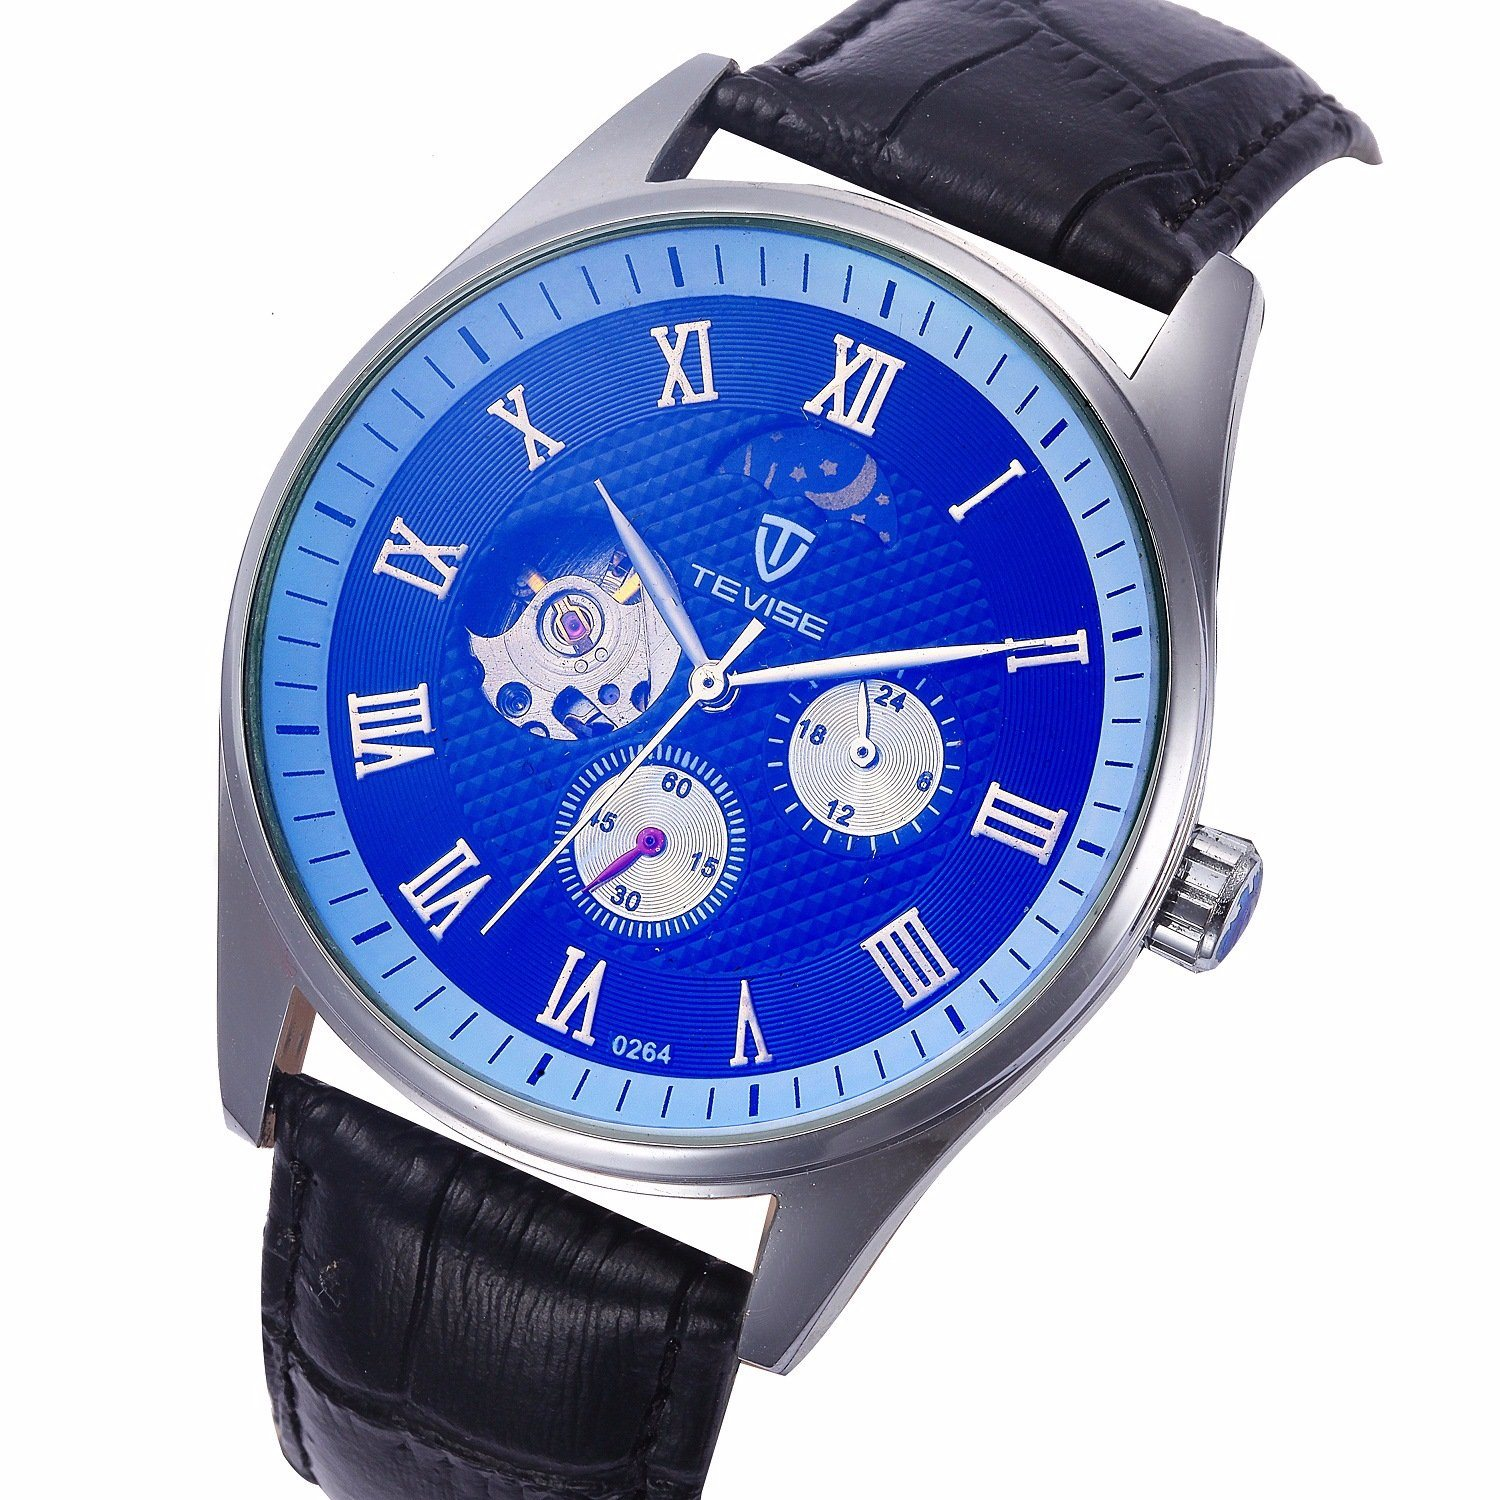 with watches konxido analog resistant kx products time watch key blue business classic wrist face quartz fashion leather scratch dress simple waterproof band mark mens design unique